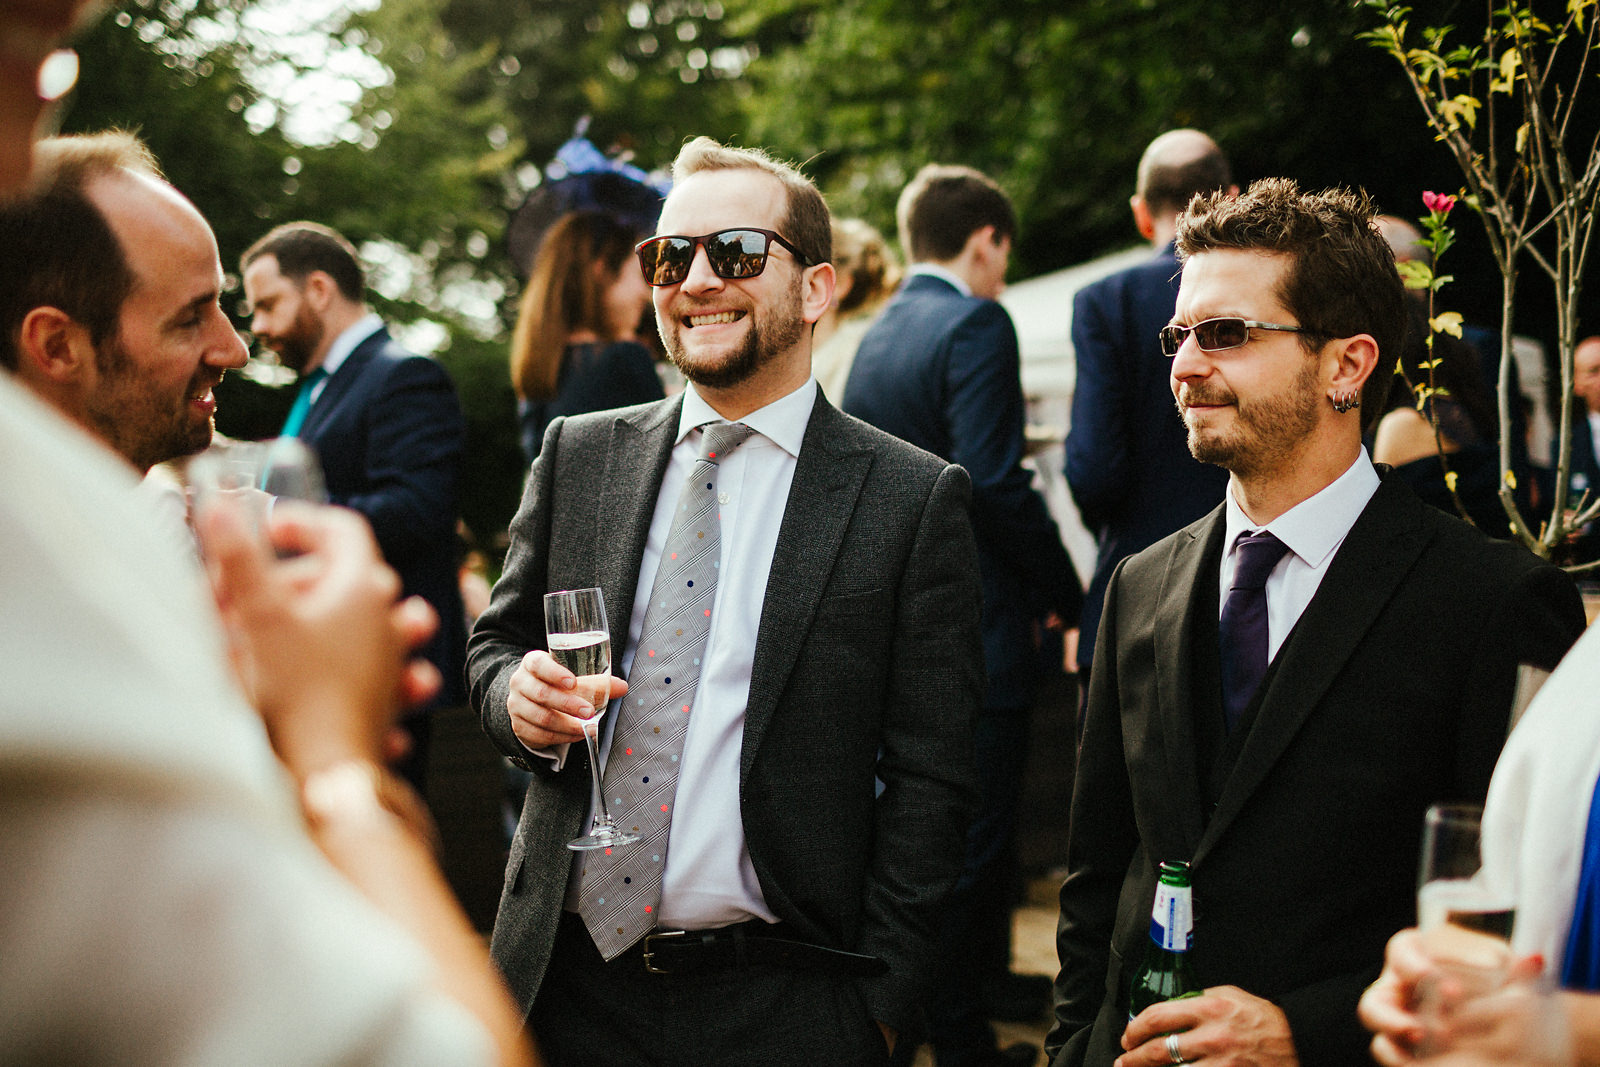 Outdoor receptions drinks at Kings Chapel